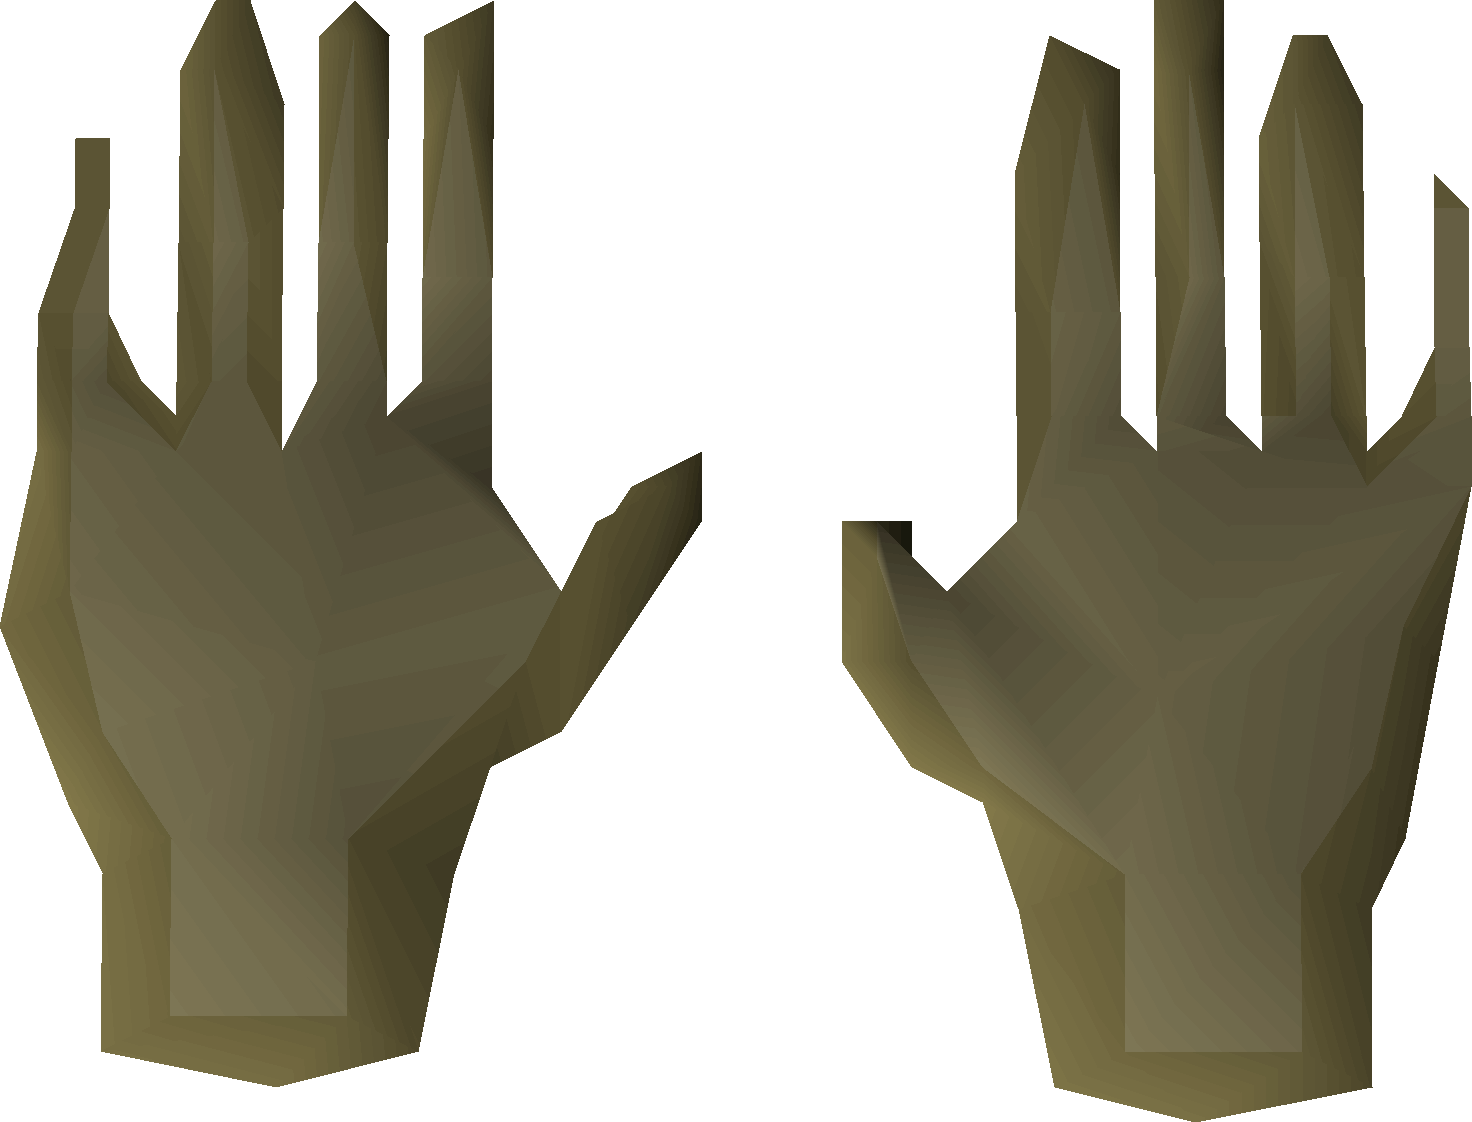 How To Get Metal Gloves Osrs - The Best Quality Gloves